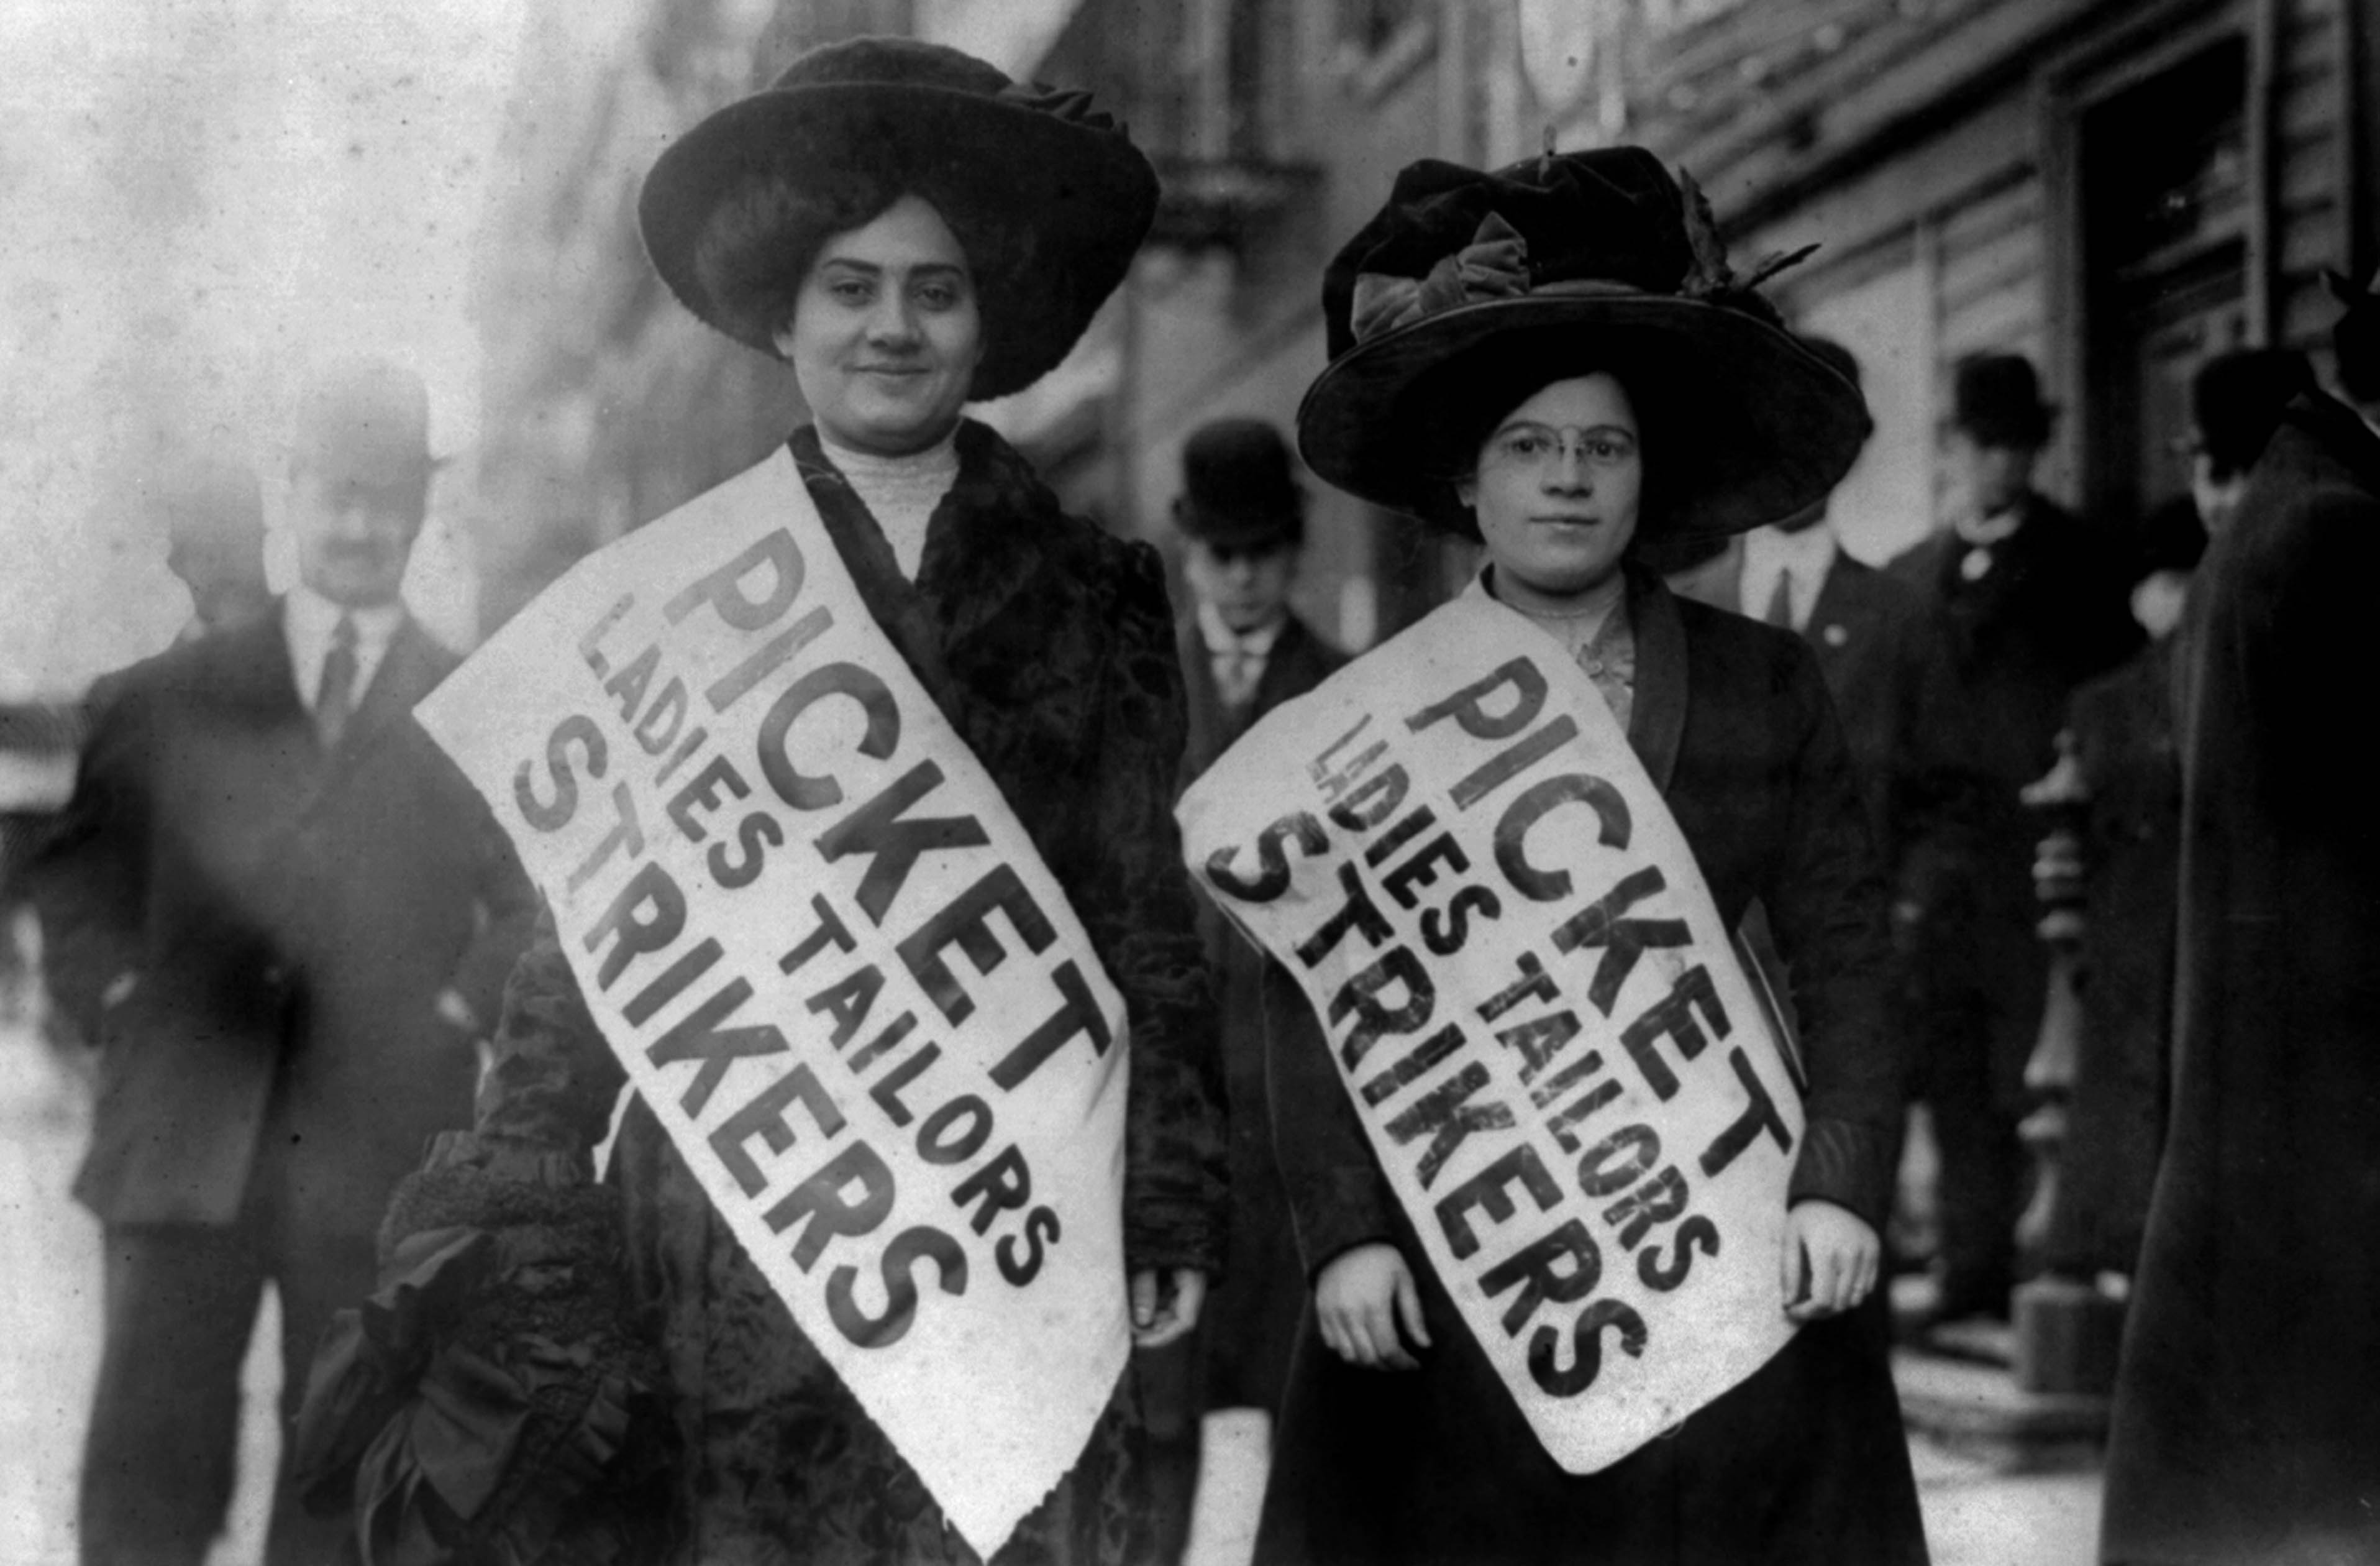 Two women in big hats in 1910 protesting working conditions